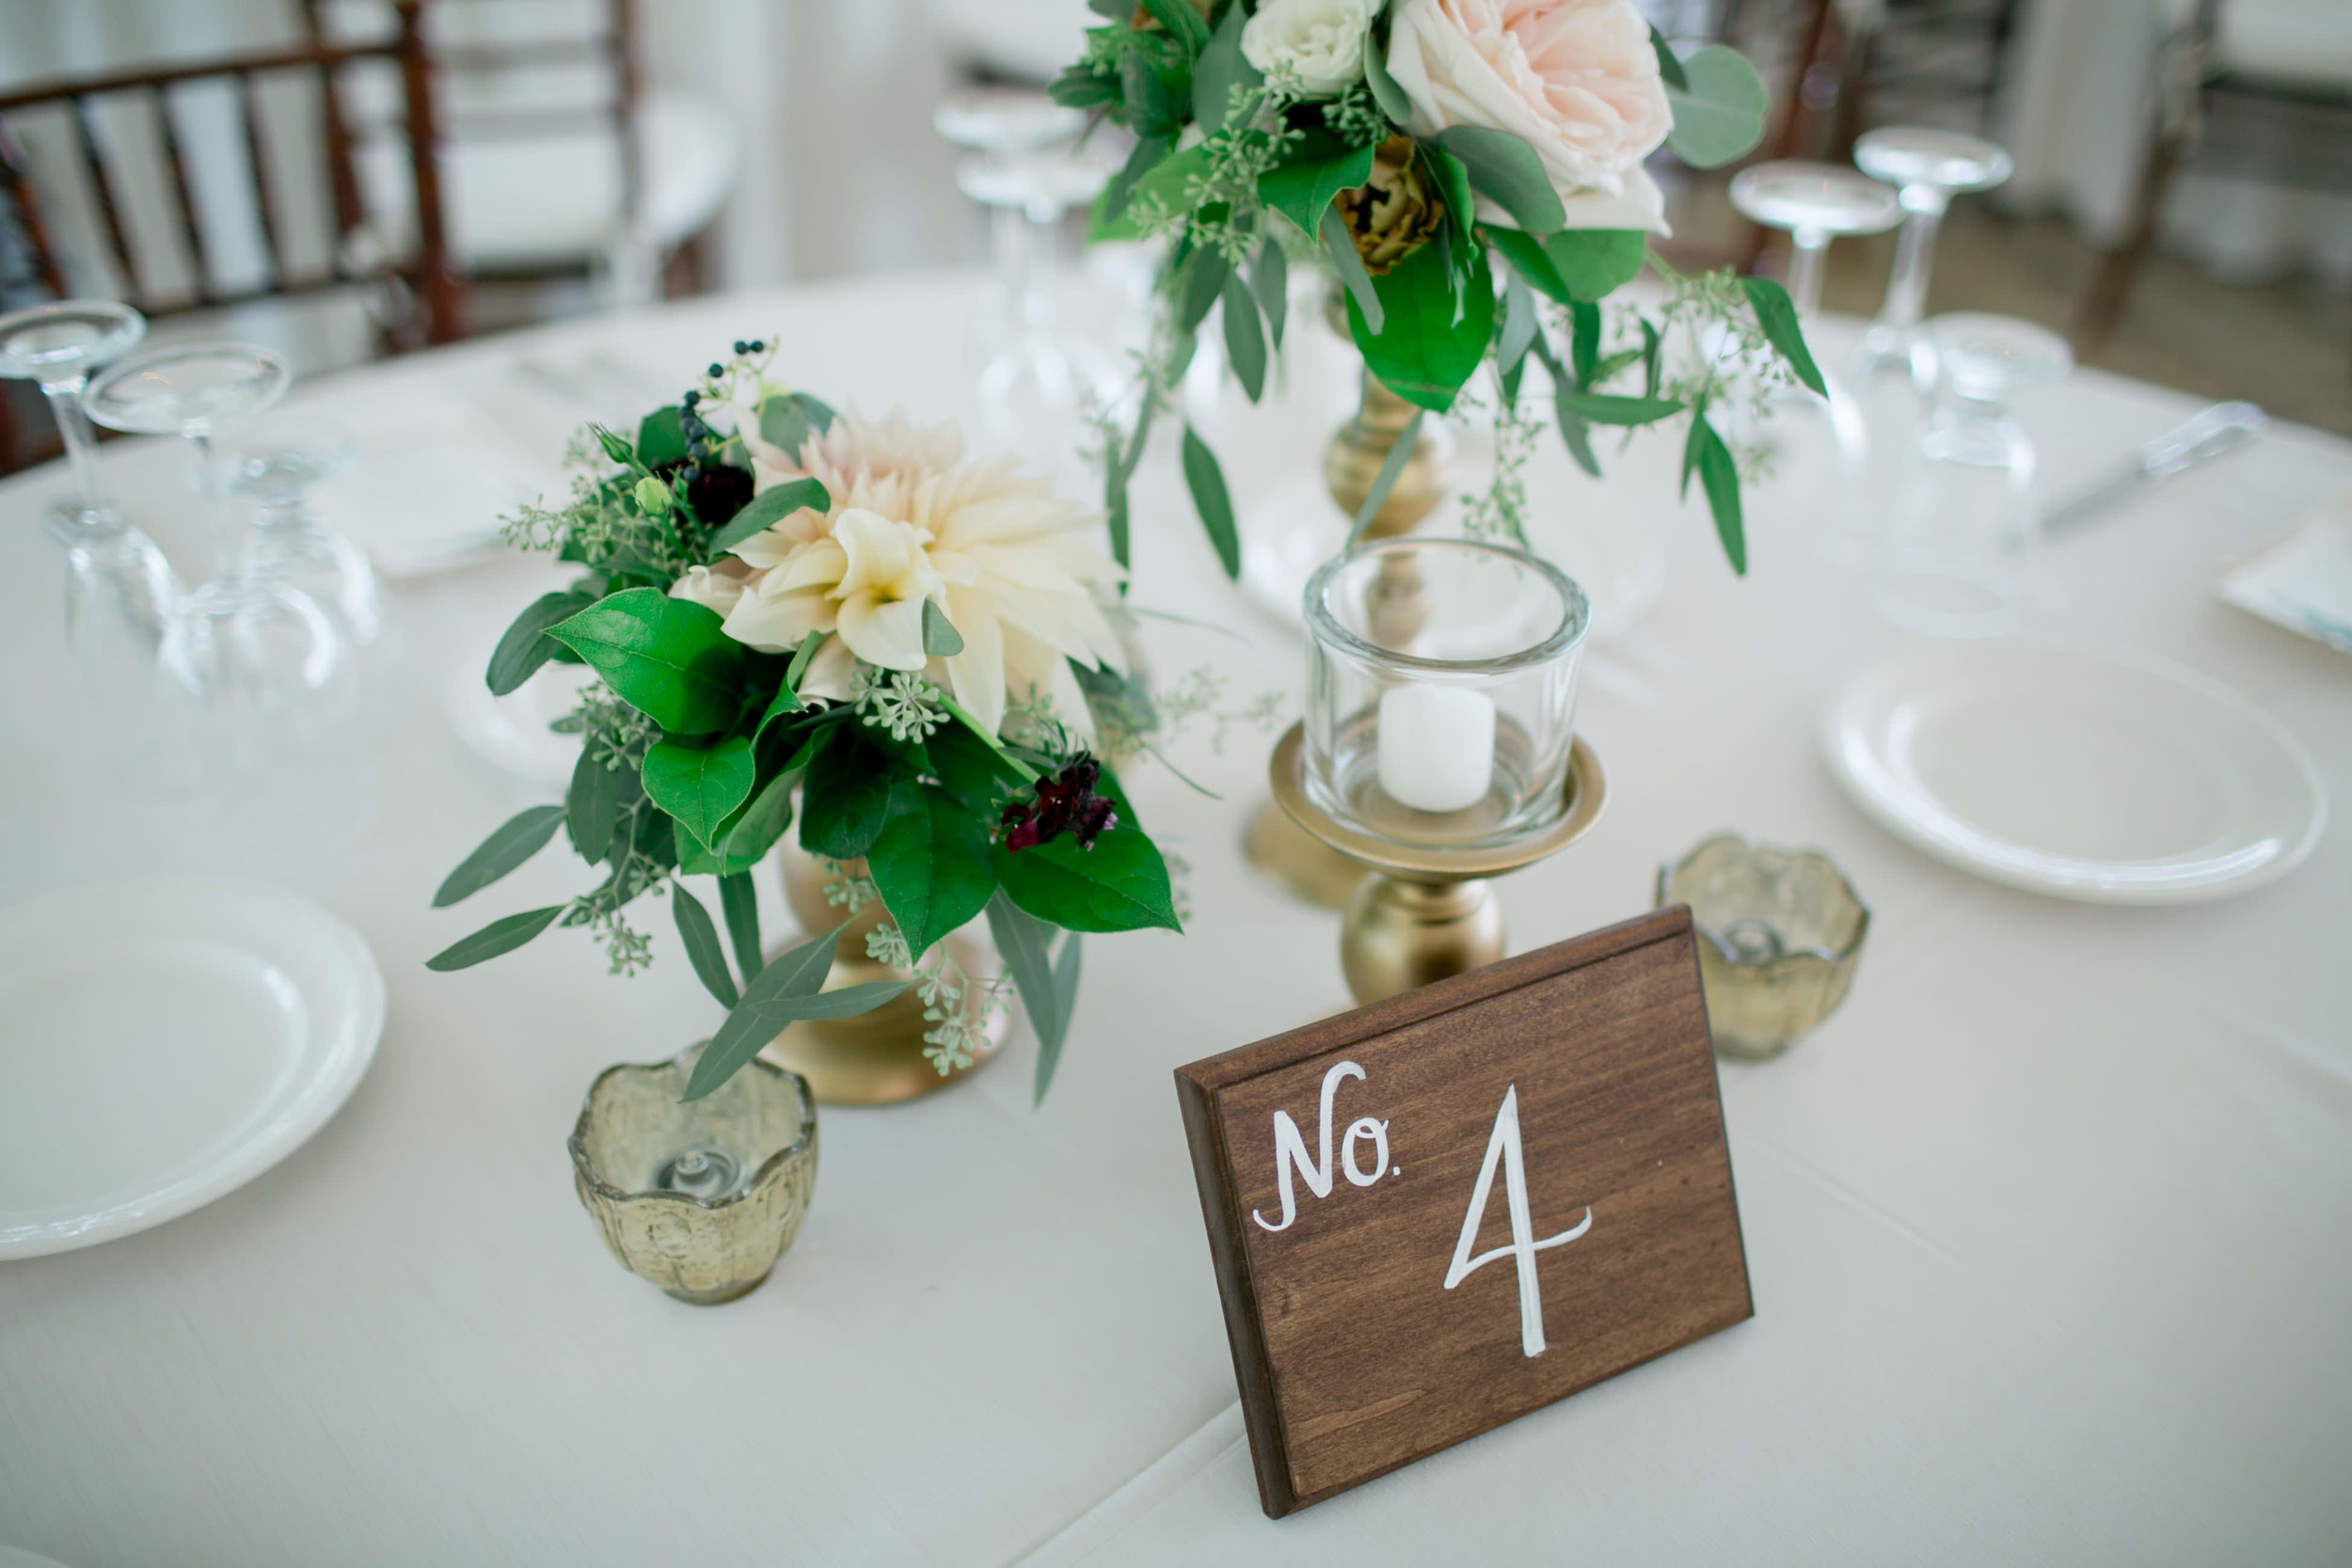 Sabrina___Jonathan_Wedding___High_Res._Finals_Daniel_Ricci_Weddings_95.jpg